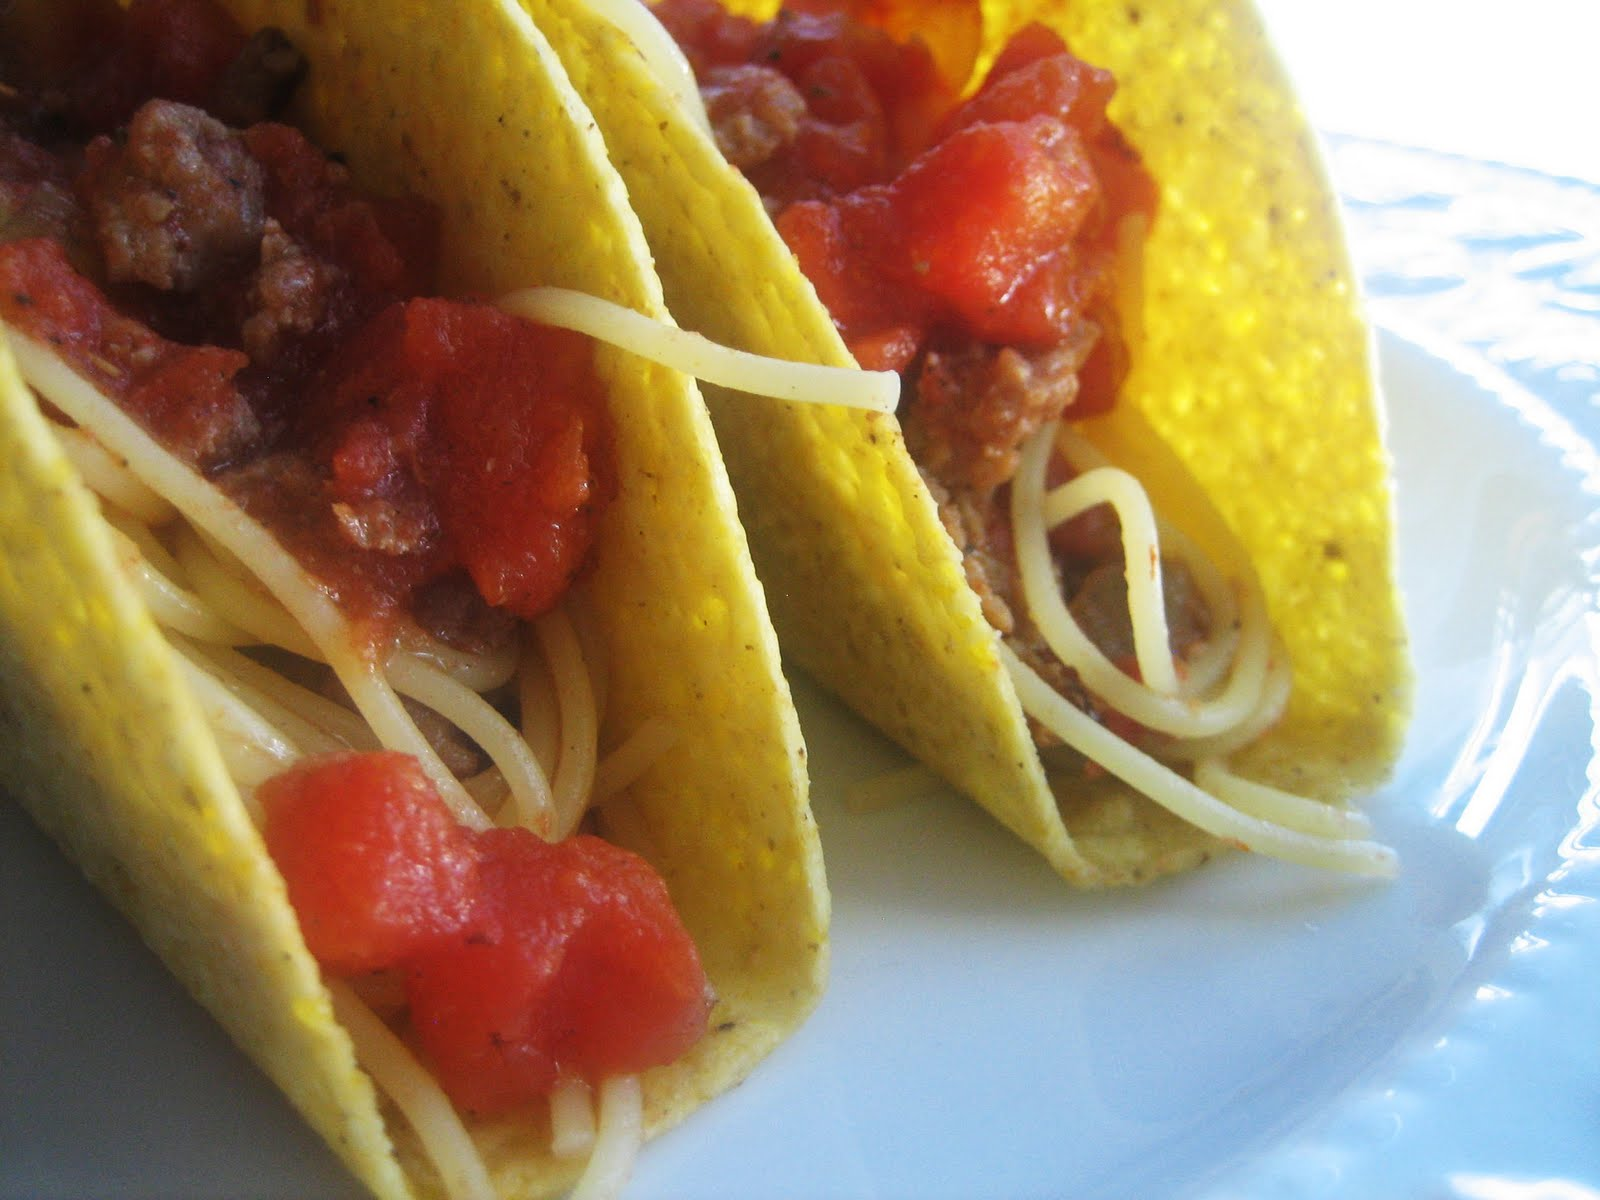 Recipes That Have Food You Have Laying Arioyund The House